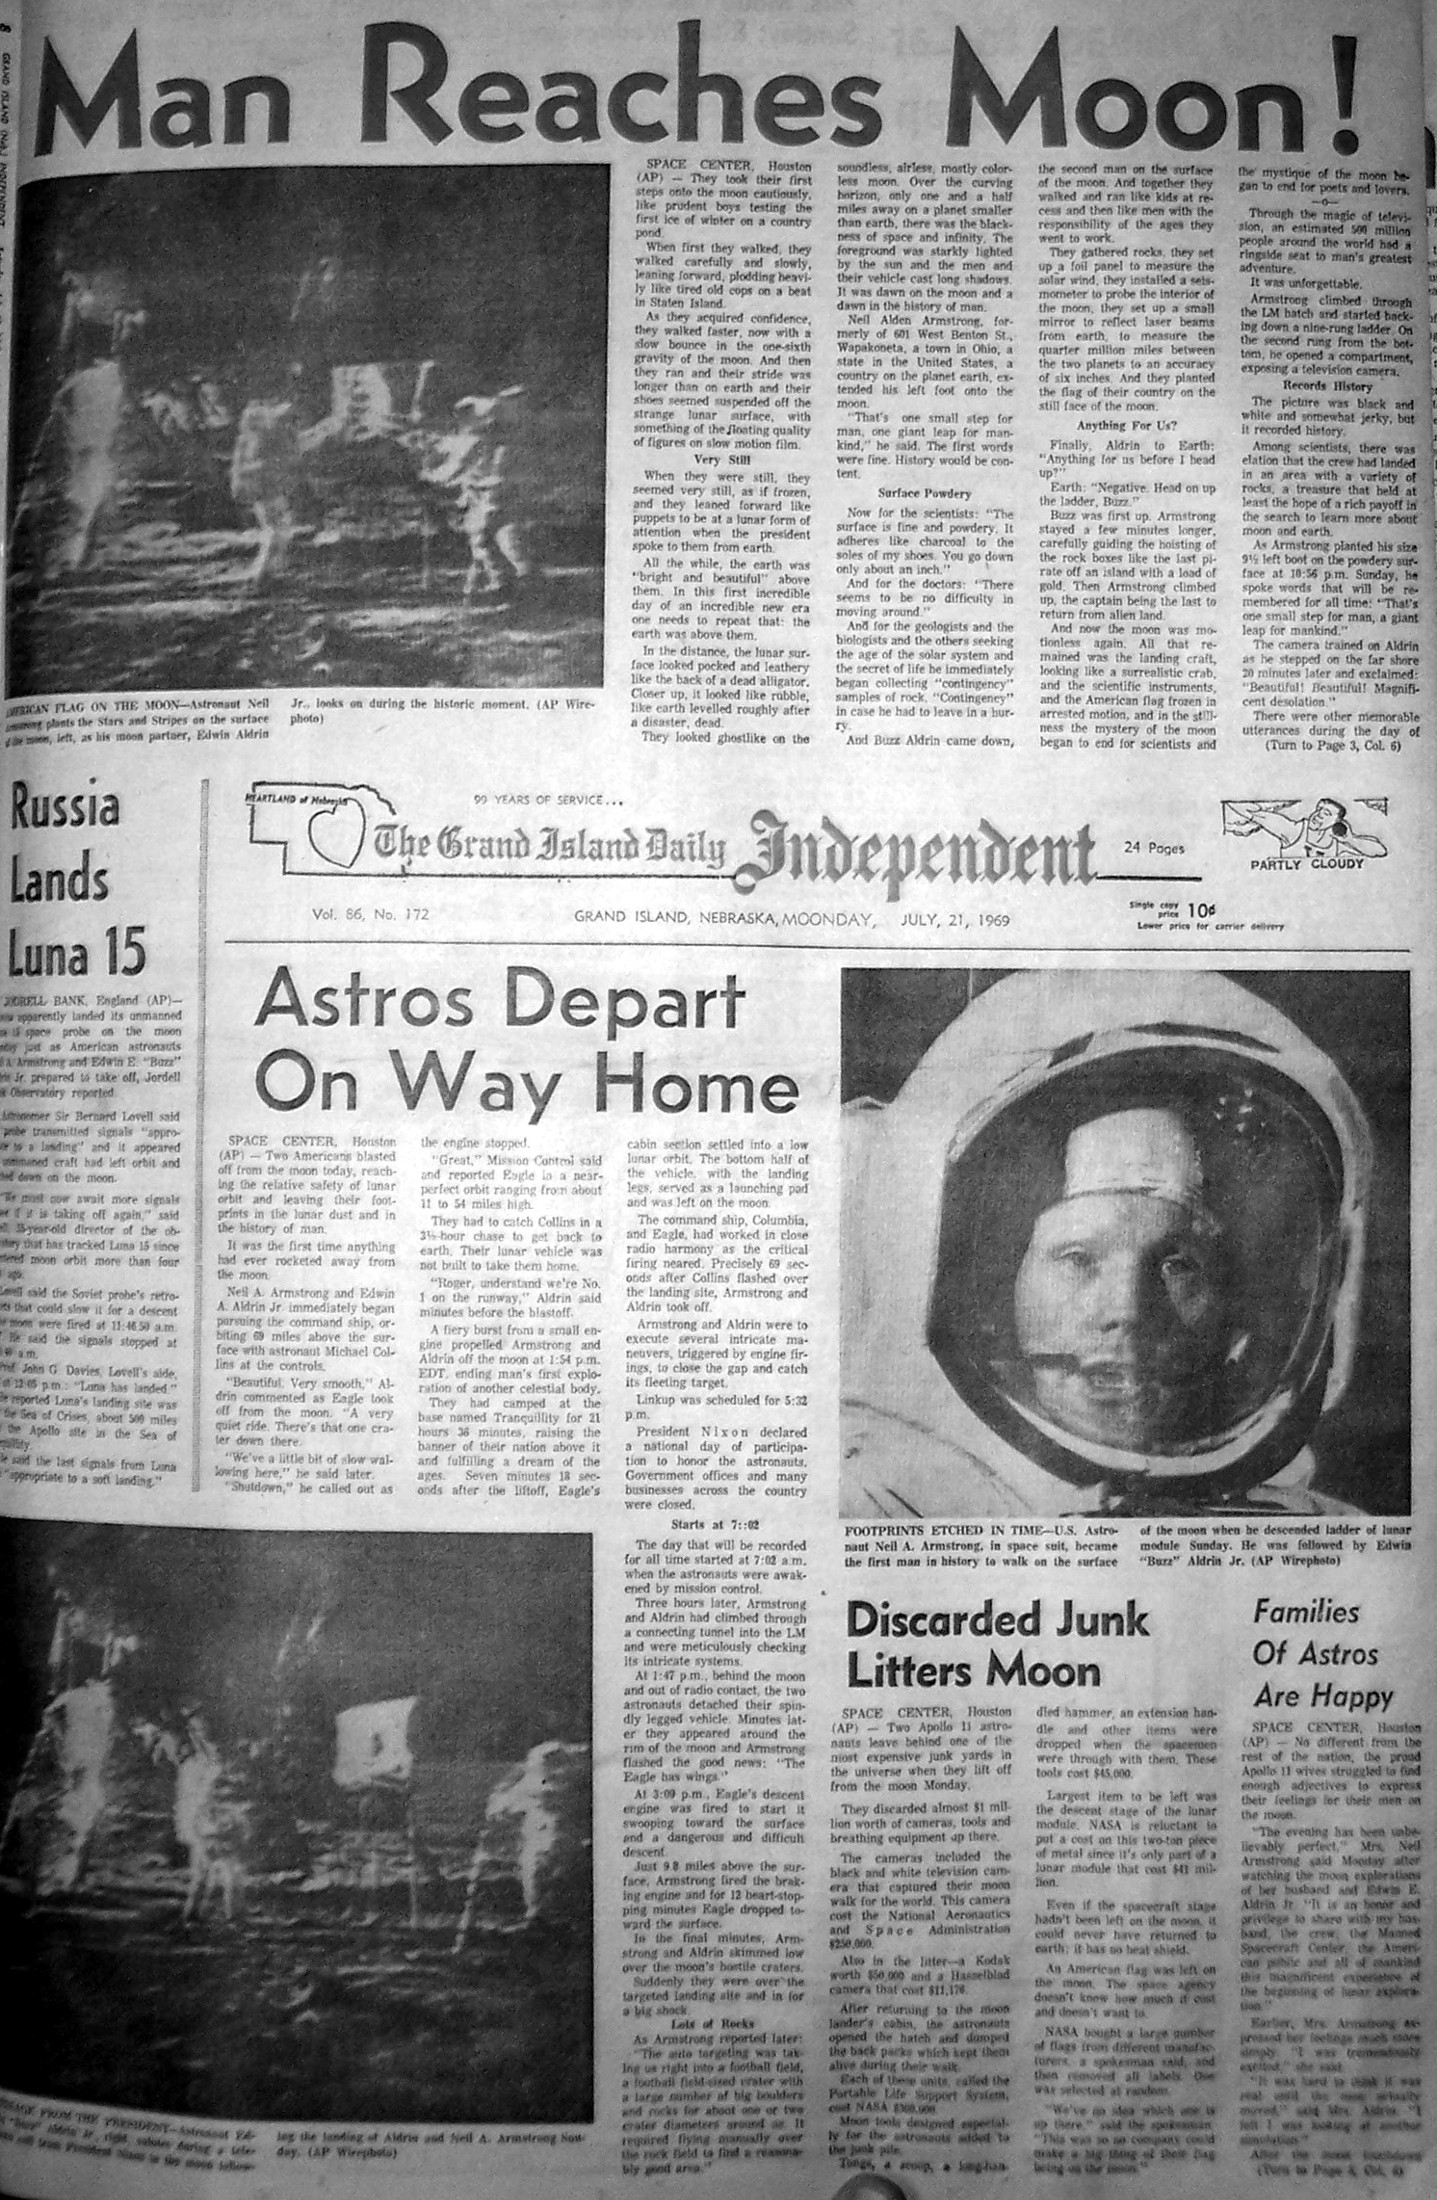 the controversy over the moon landing by apollo 11 in 1969 The video of the very first moon landing of the apollo 11 mission in 1969 neil armstrong was the first man to set foot on the moon with his now legenday wor.